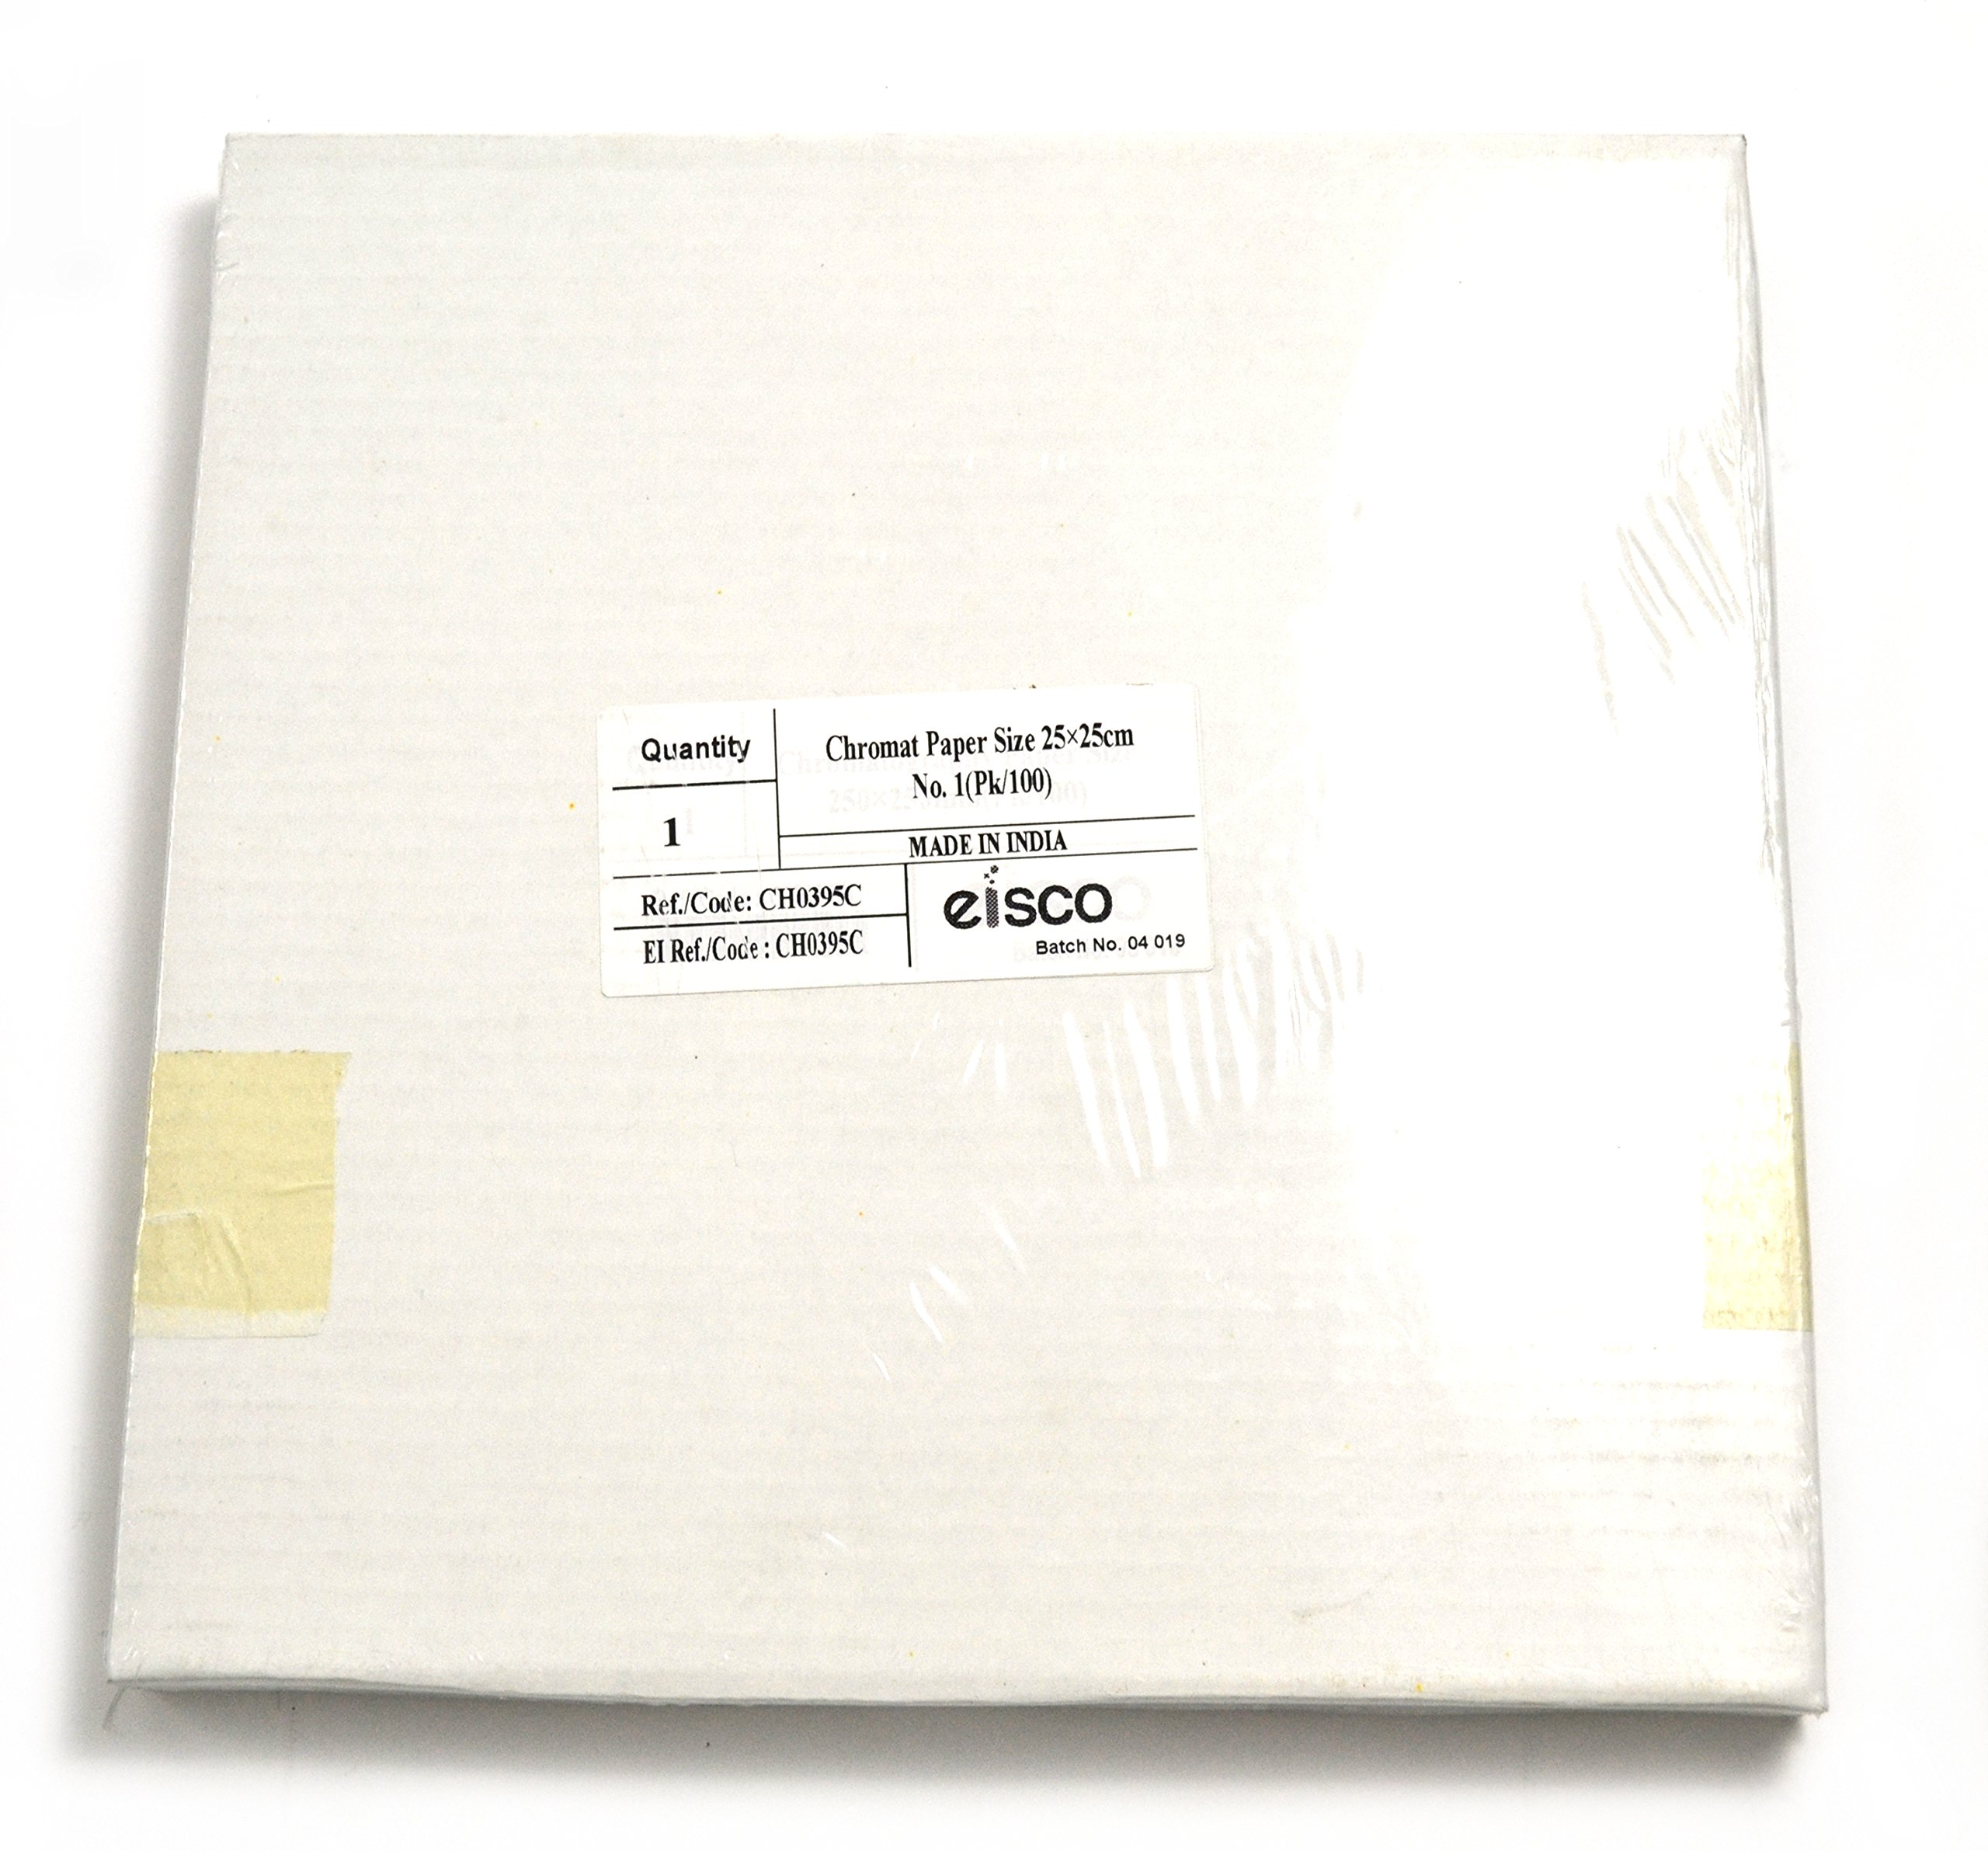 Eisco Labs Chromatography Filter Paper Sheet 25cm x 25cm (9.84'' x 9.84'') Pack of 100 by EISCO